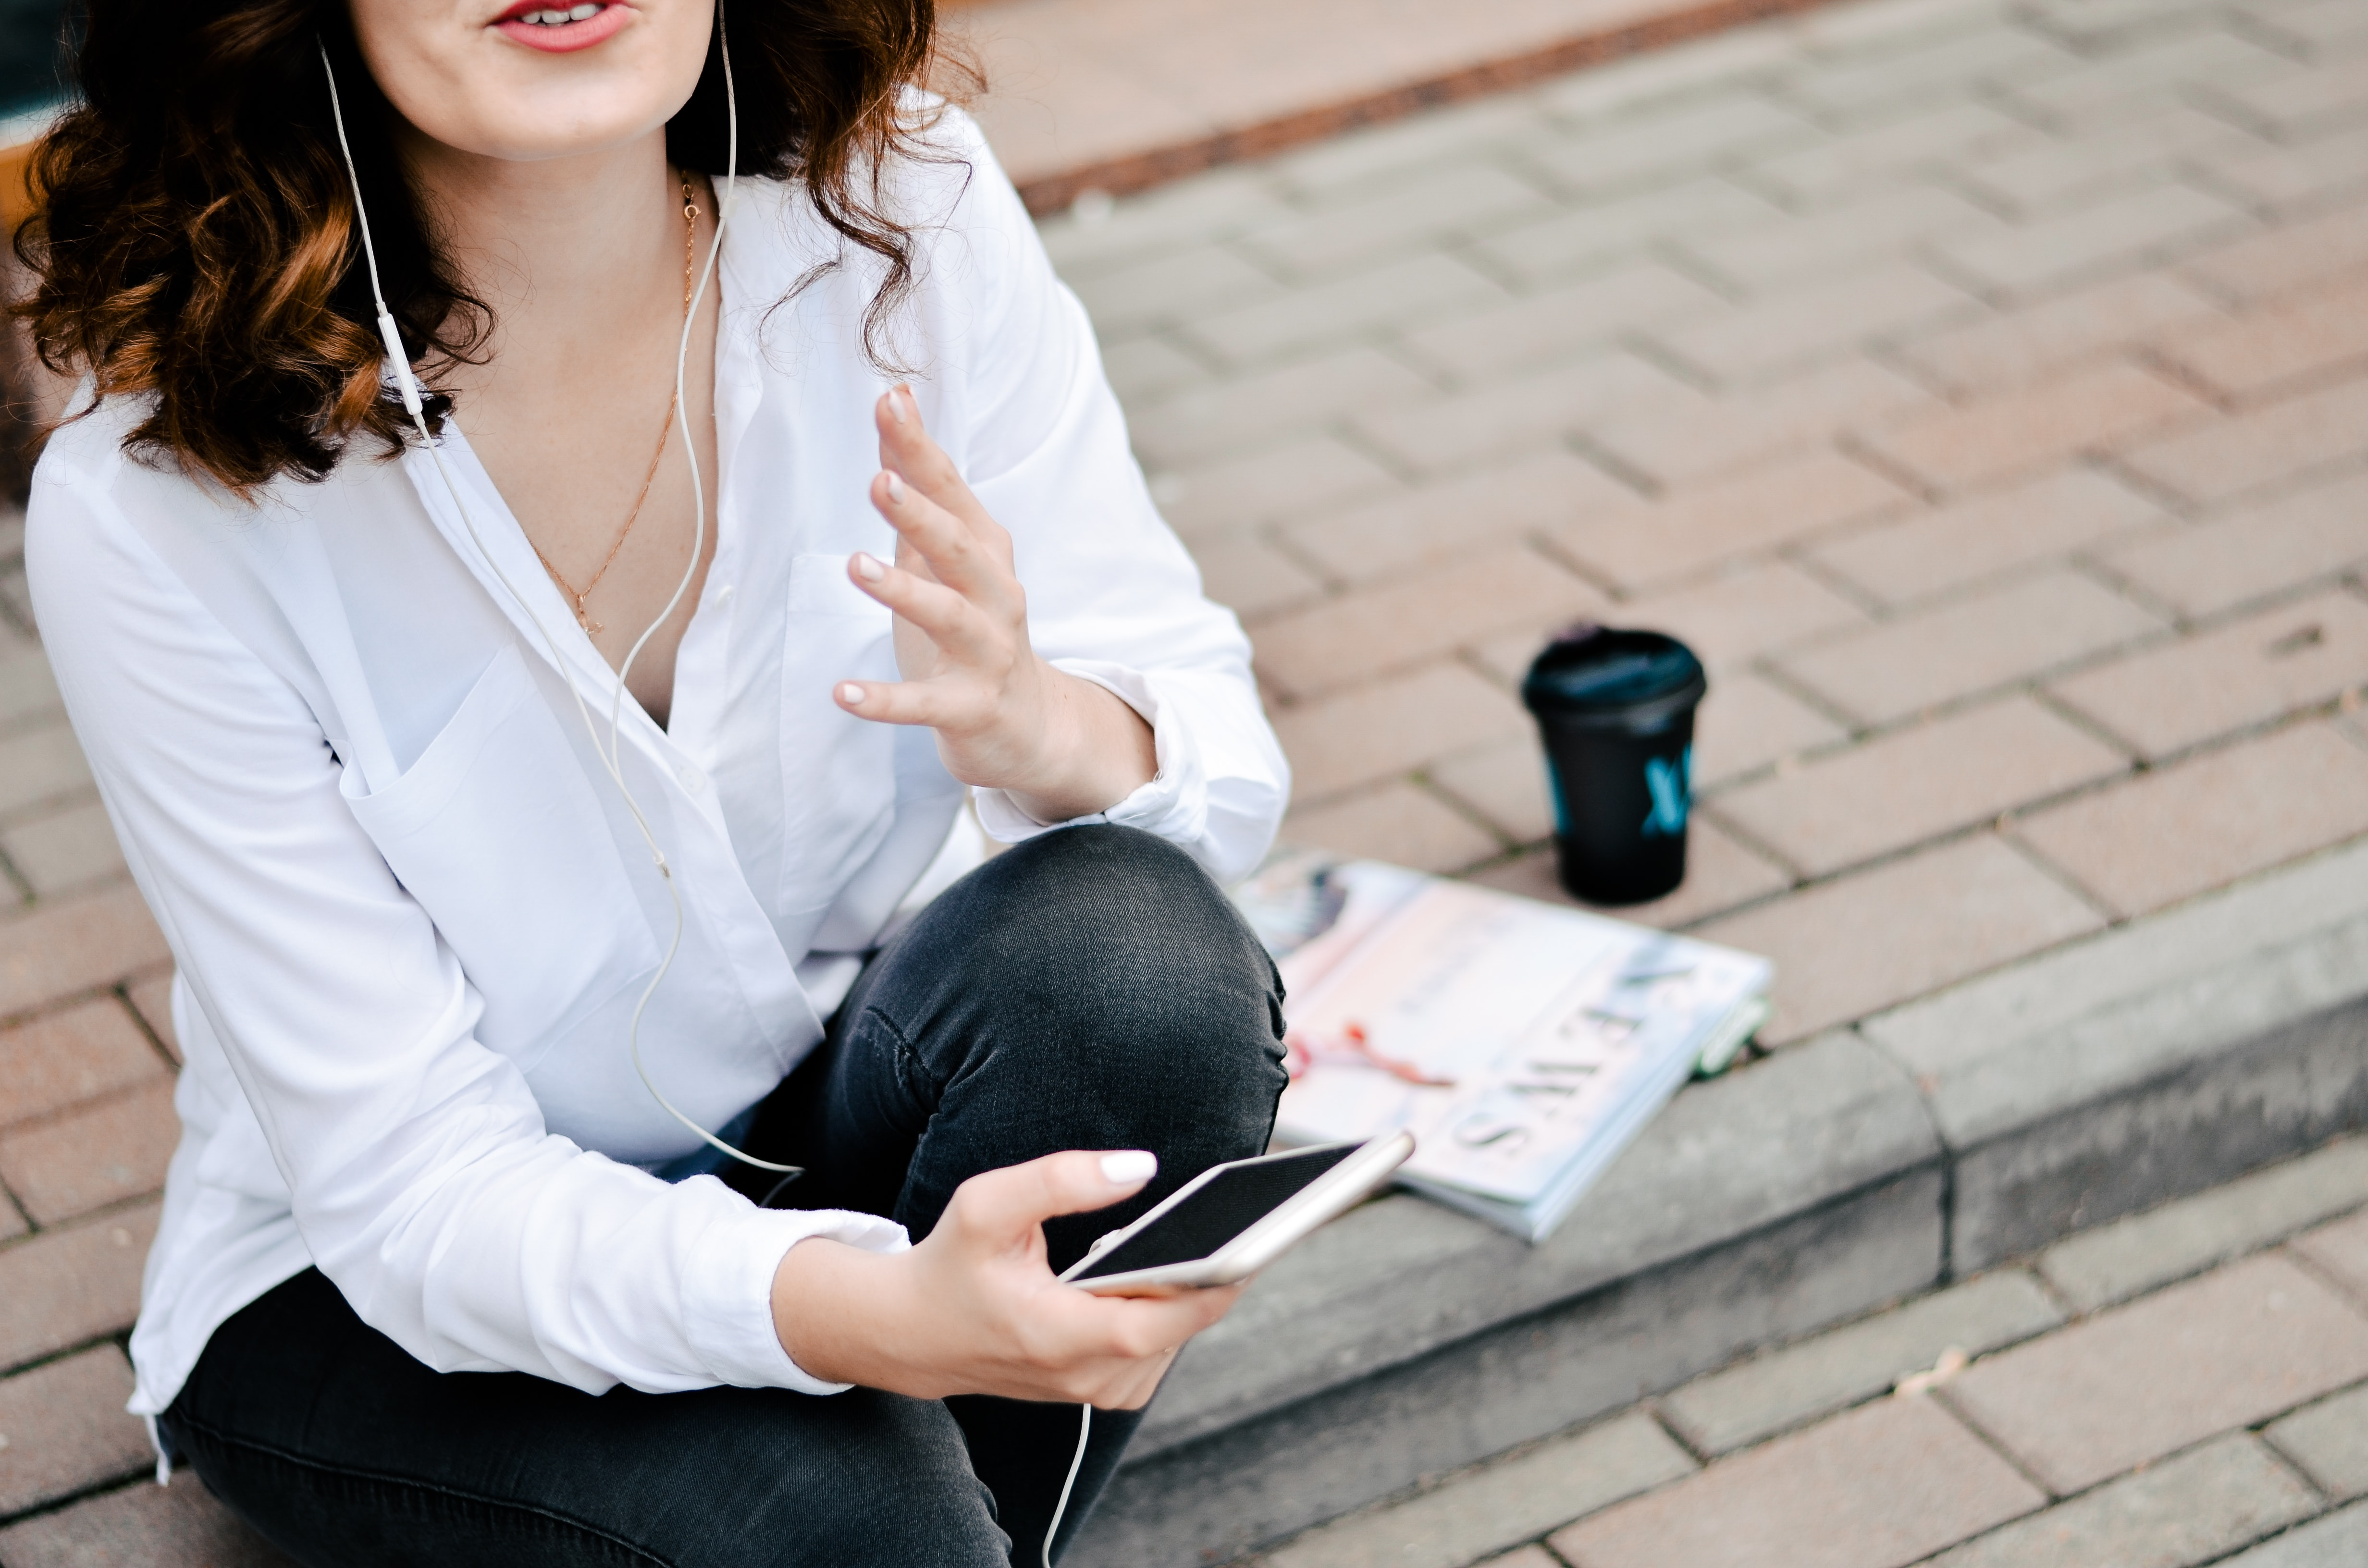 woman holding smartphone while sitting on brick pavement during daytime